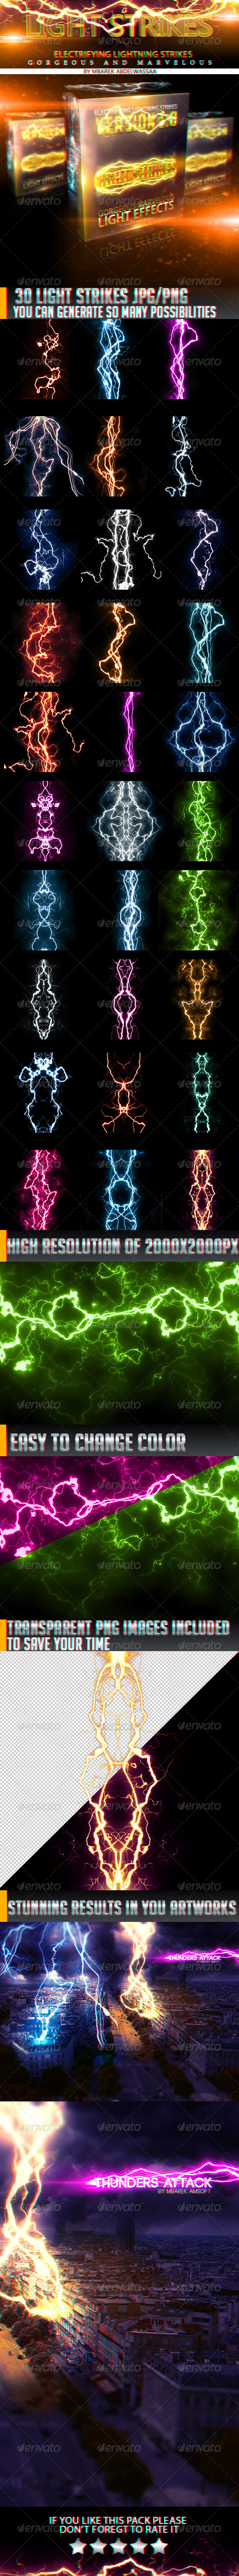 GraphicRiver 30 Stunnig Light Strikes 5361048